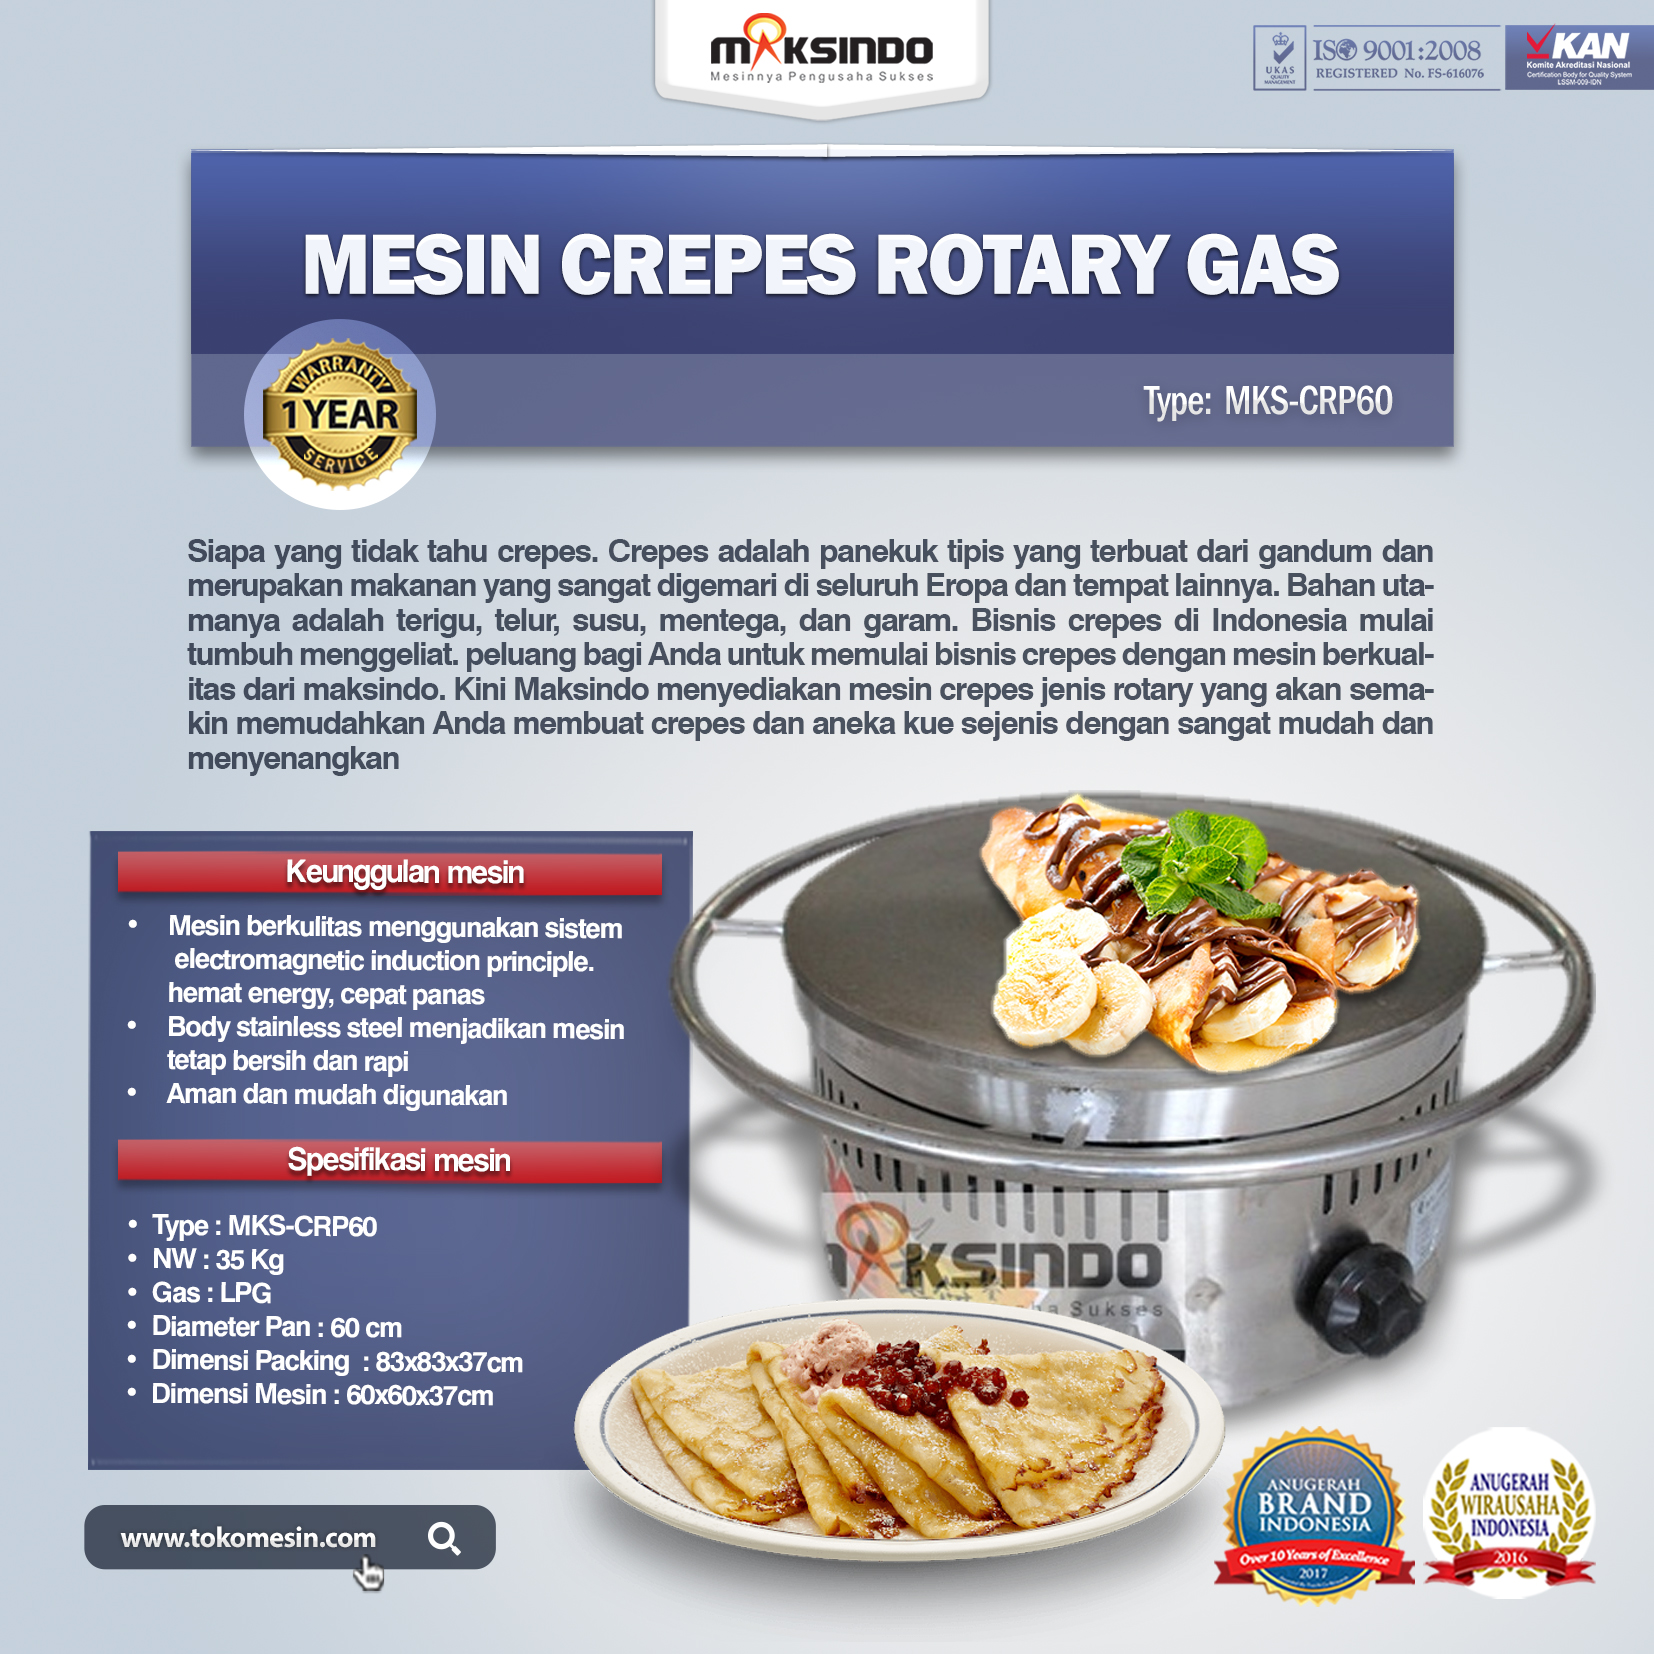 Mesin Crepes Rotary Gas MKS-CRP60